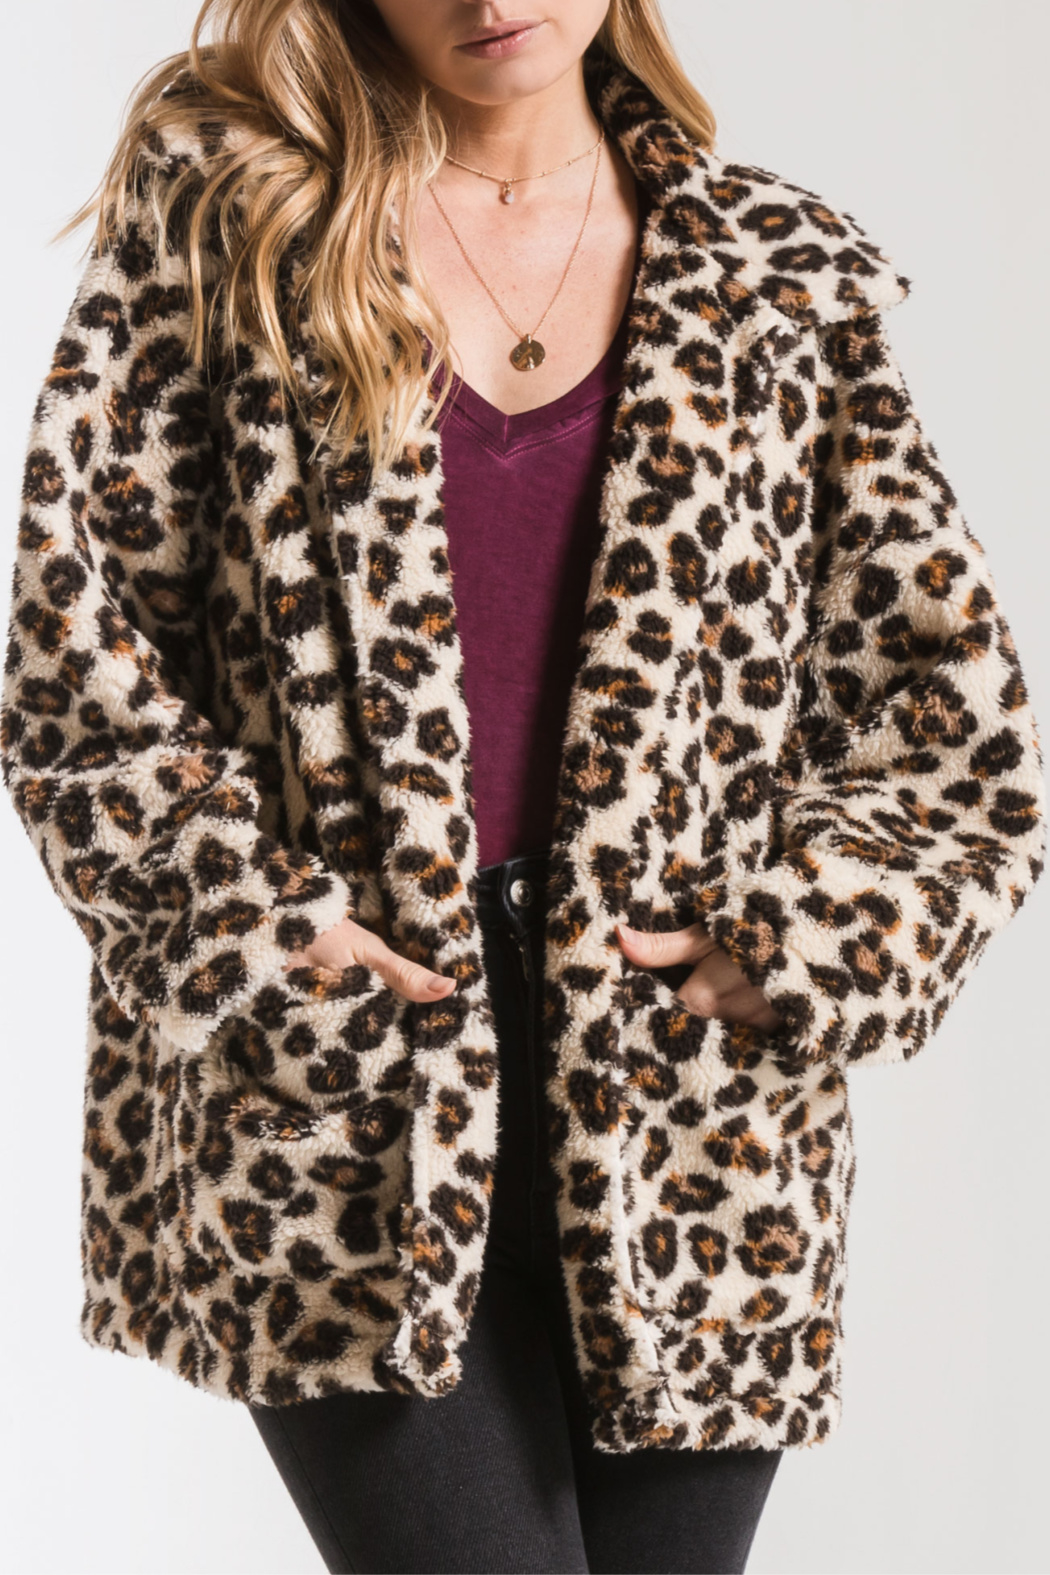 z supply Leopard Sherpa TB Coat - Main Image